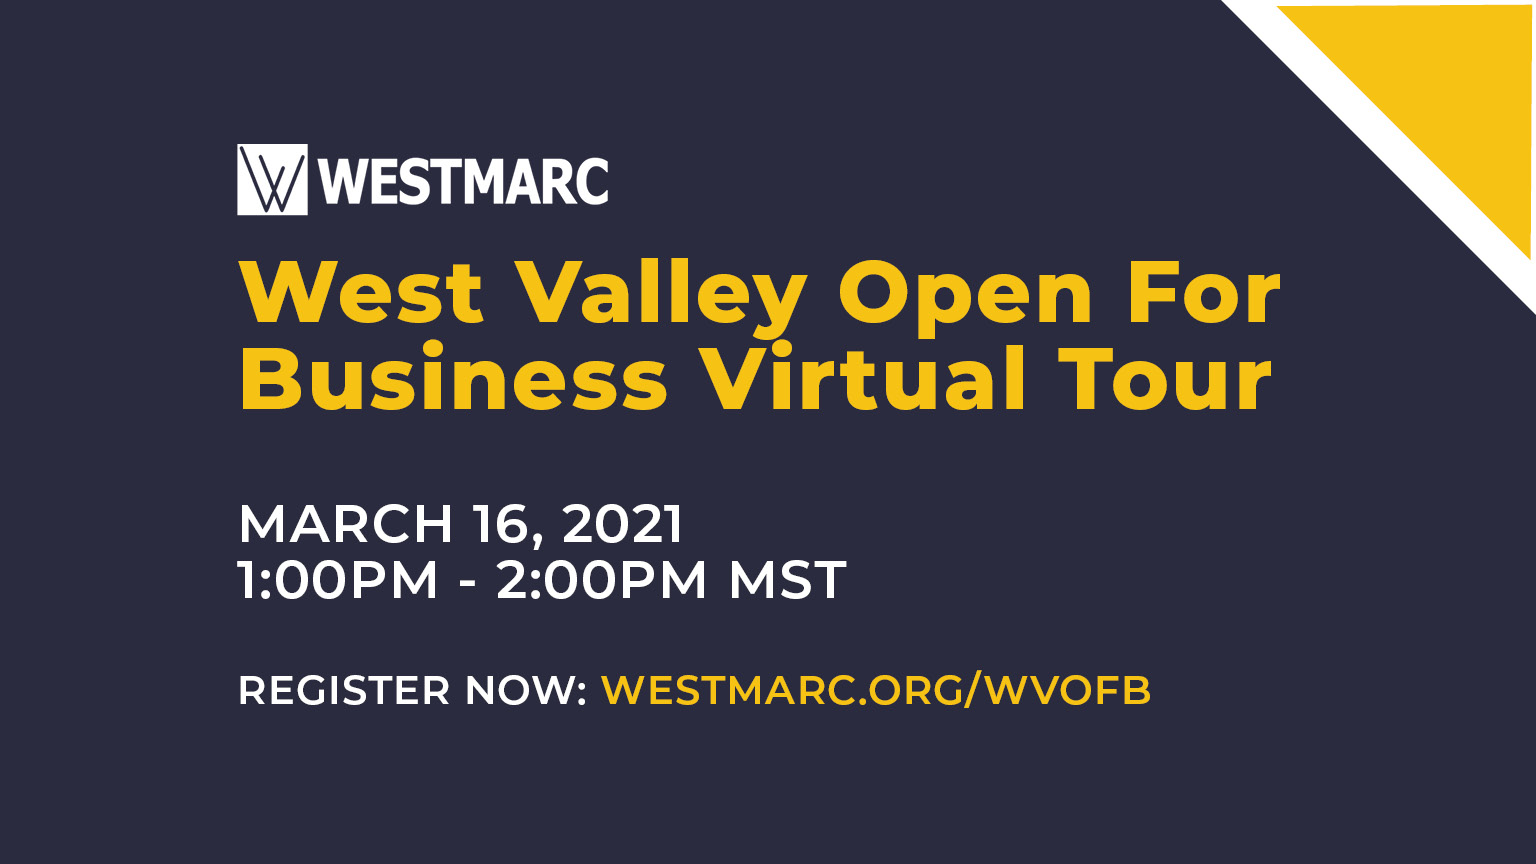 West Valley Open for Business Virtual Tour